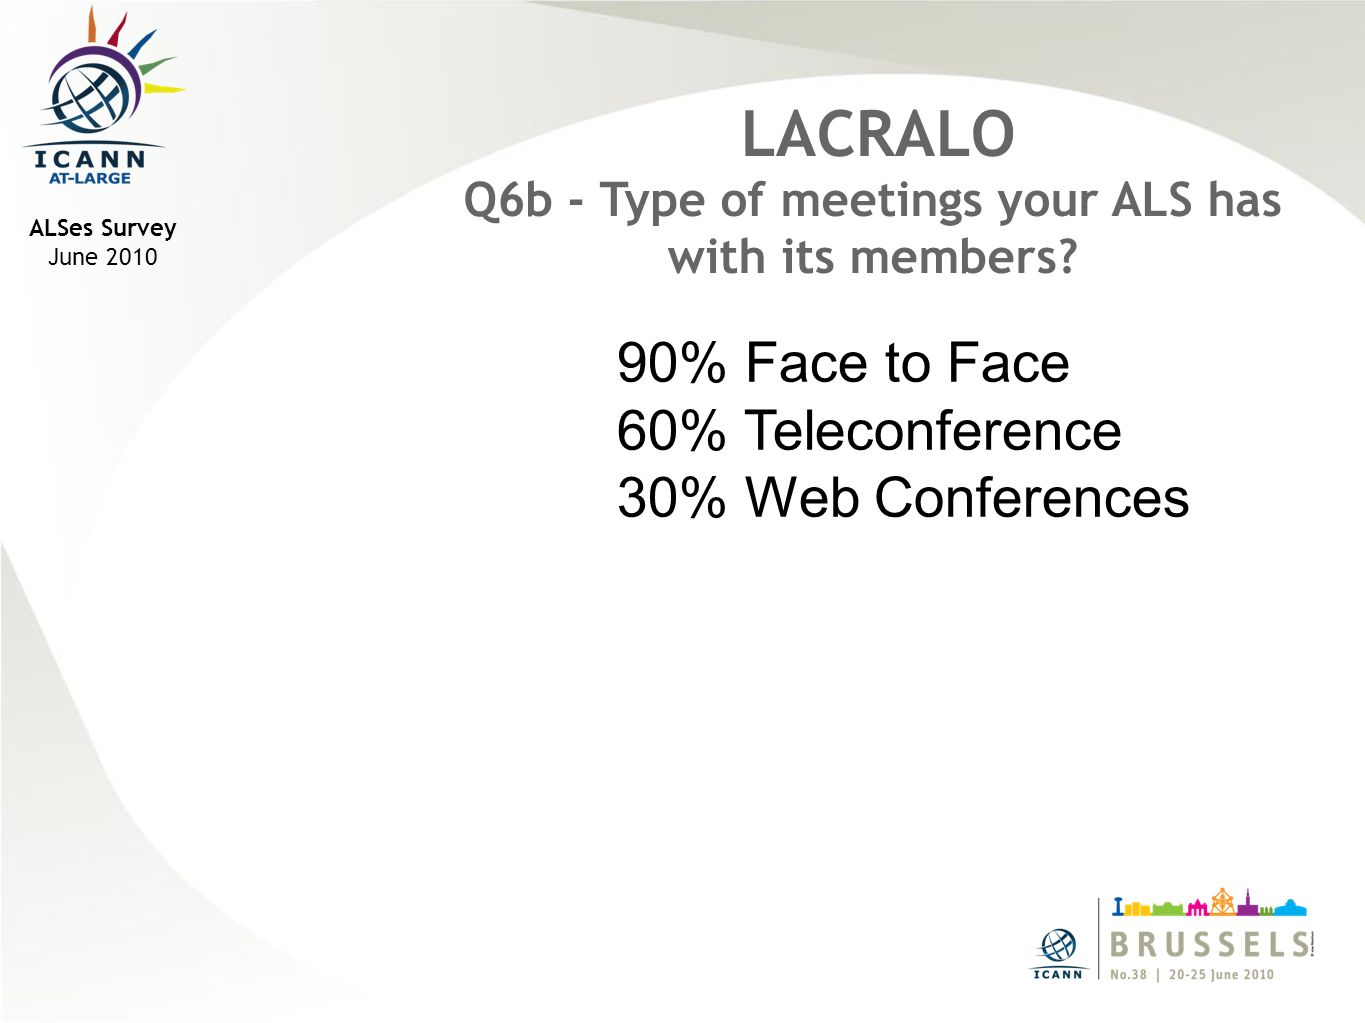 ALSes Survey June 2010 LACRALO Q6b - Type of meetings your ALS has with its members.